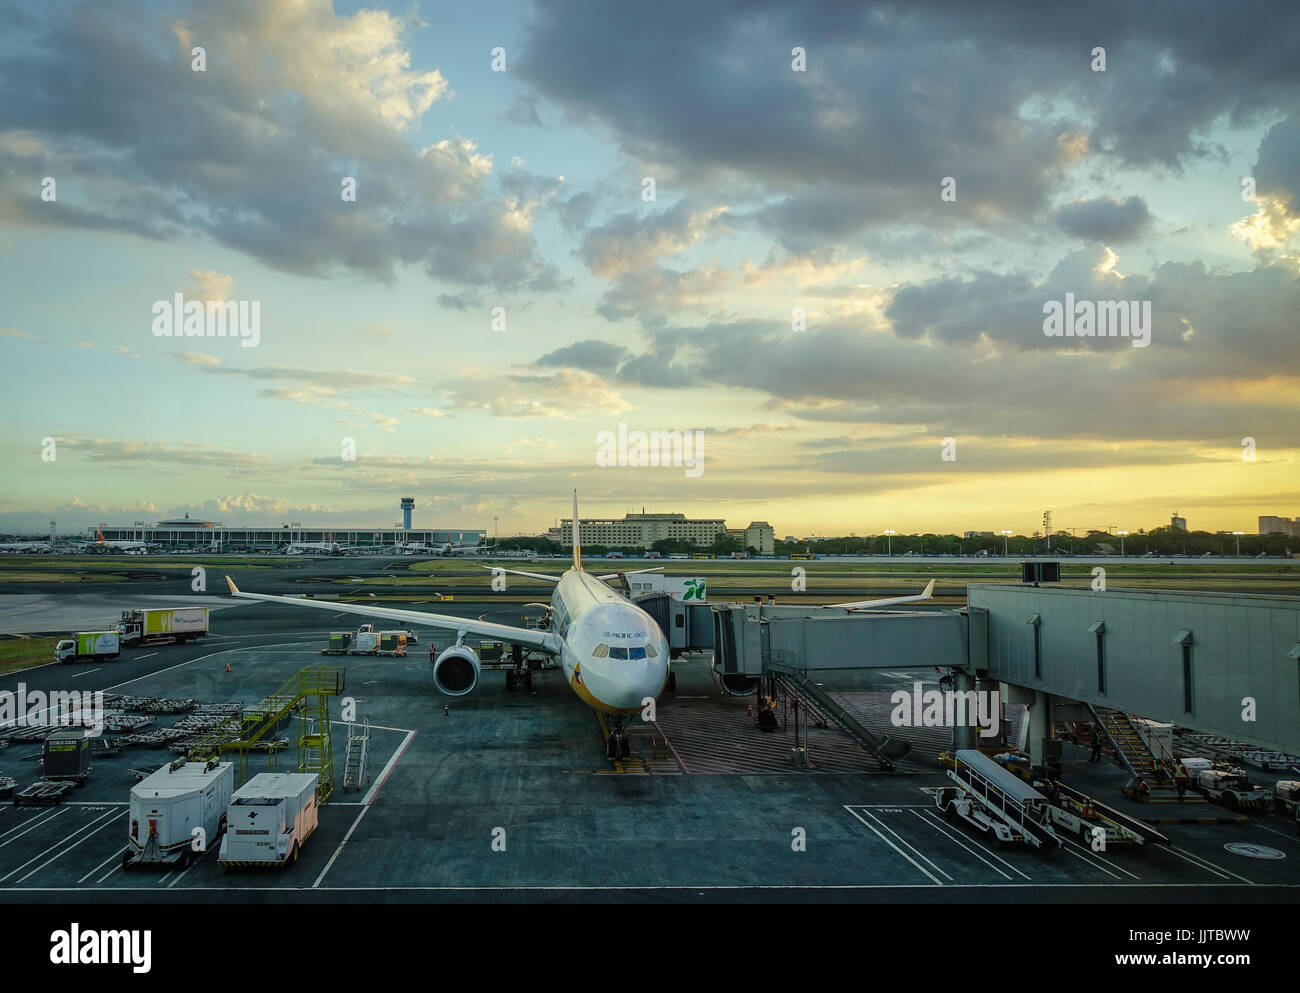 Manila, Philippines - Apr 14, 2017. A civil aircraft docks and waits at Terminal 3 of Ninoy Aquino Airport (NAIA) - Stock Image